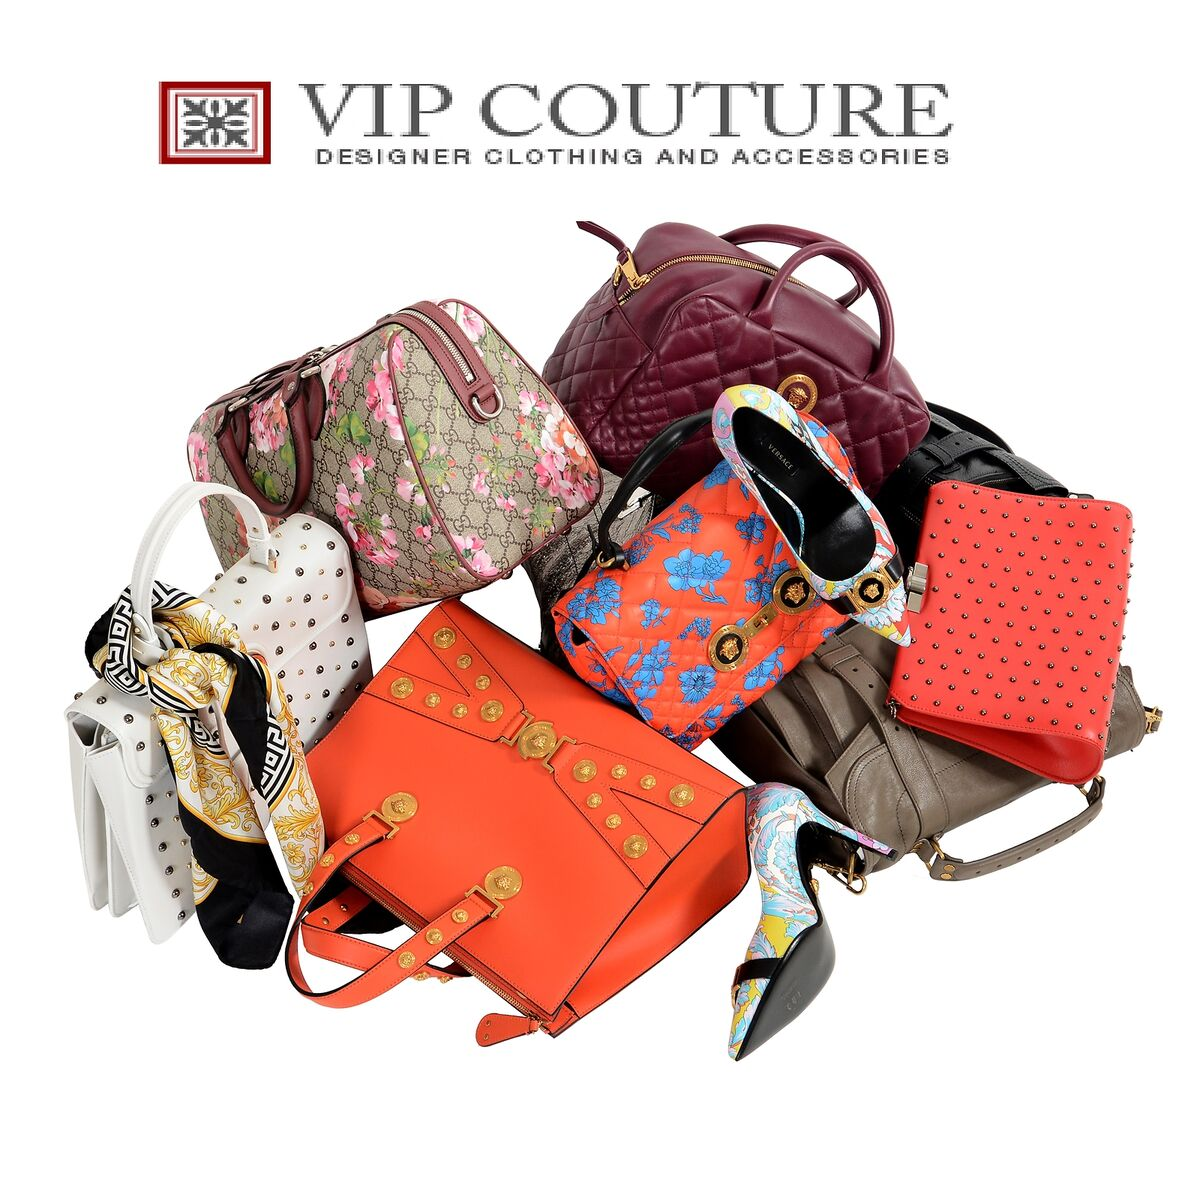 VIP_COUTURE